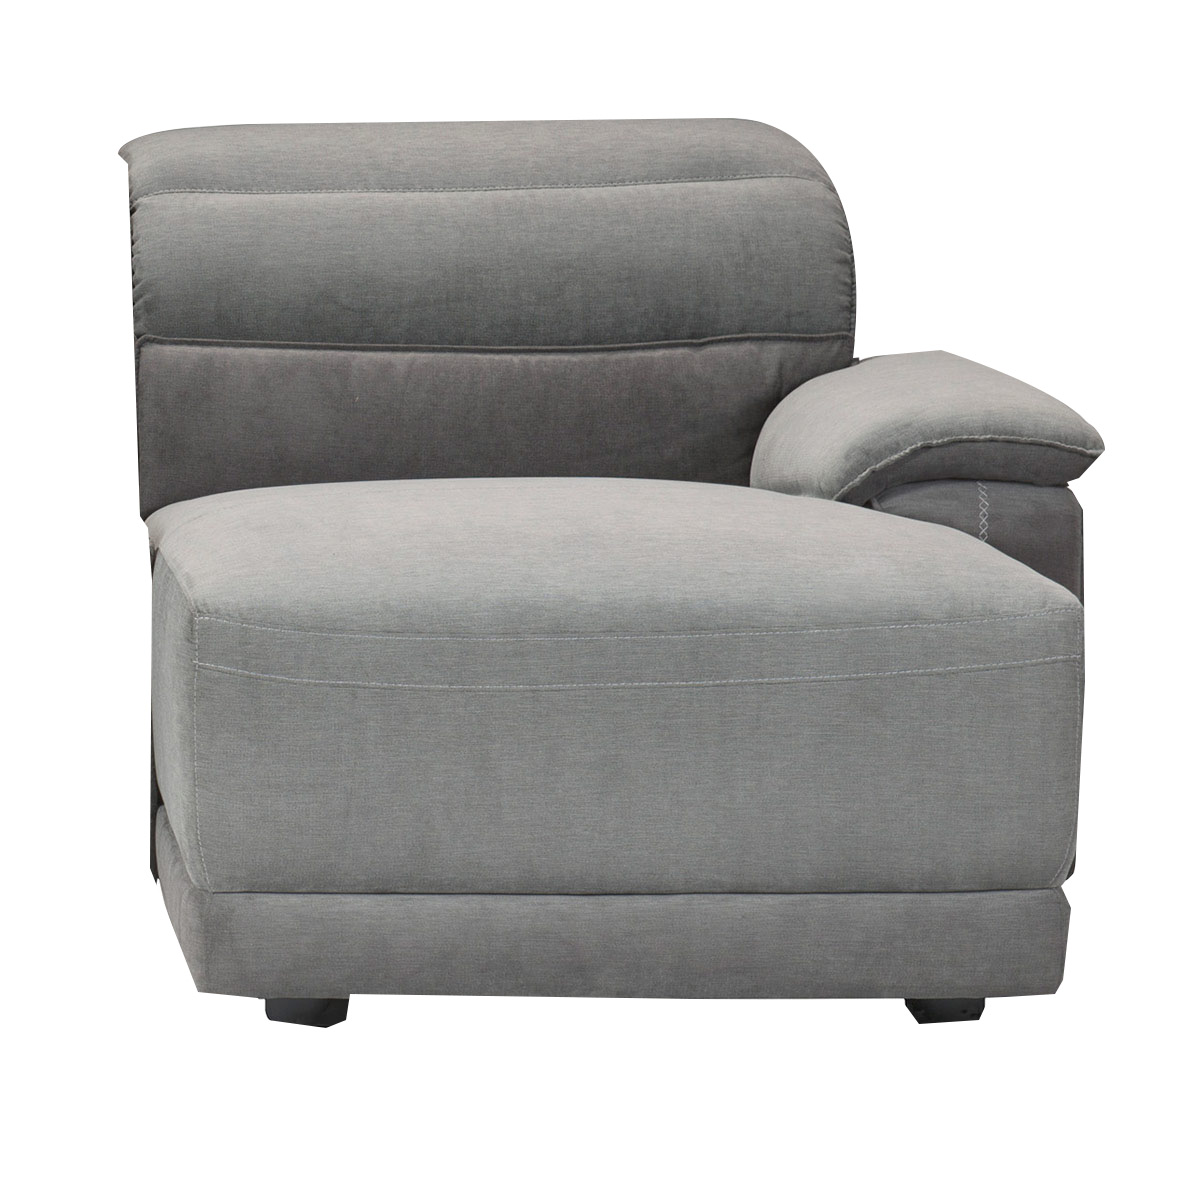 Homelegance Ember Right Side Chaise - Dark Gray